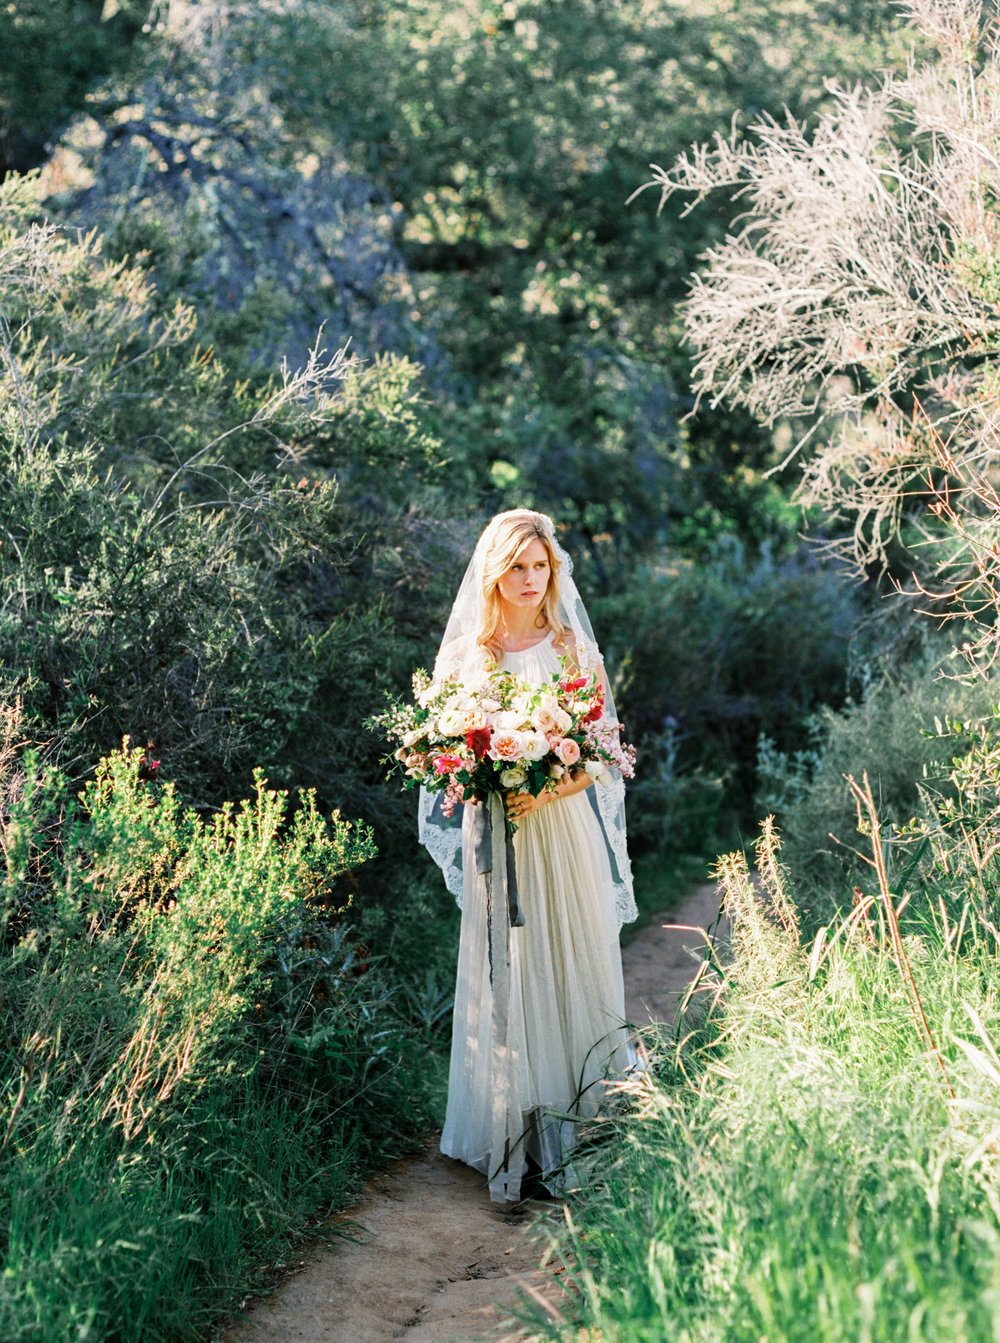 malibu_wedding_bride-37.jpg